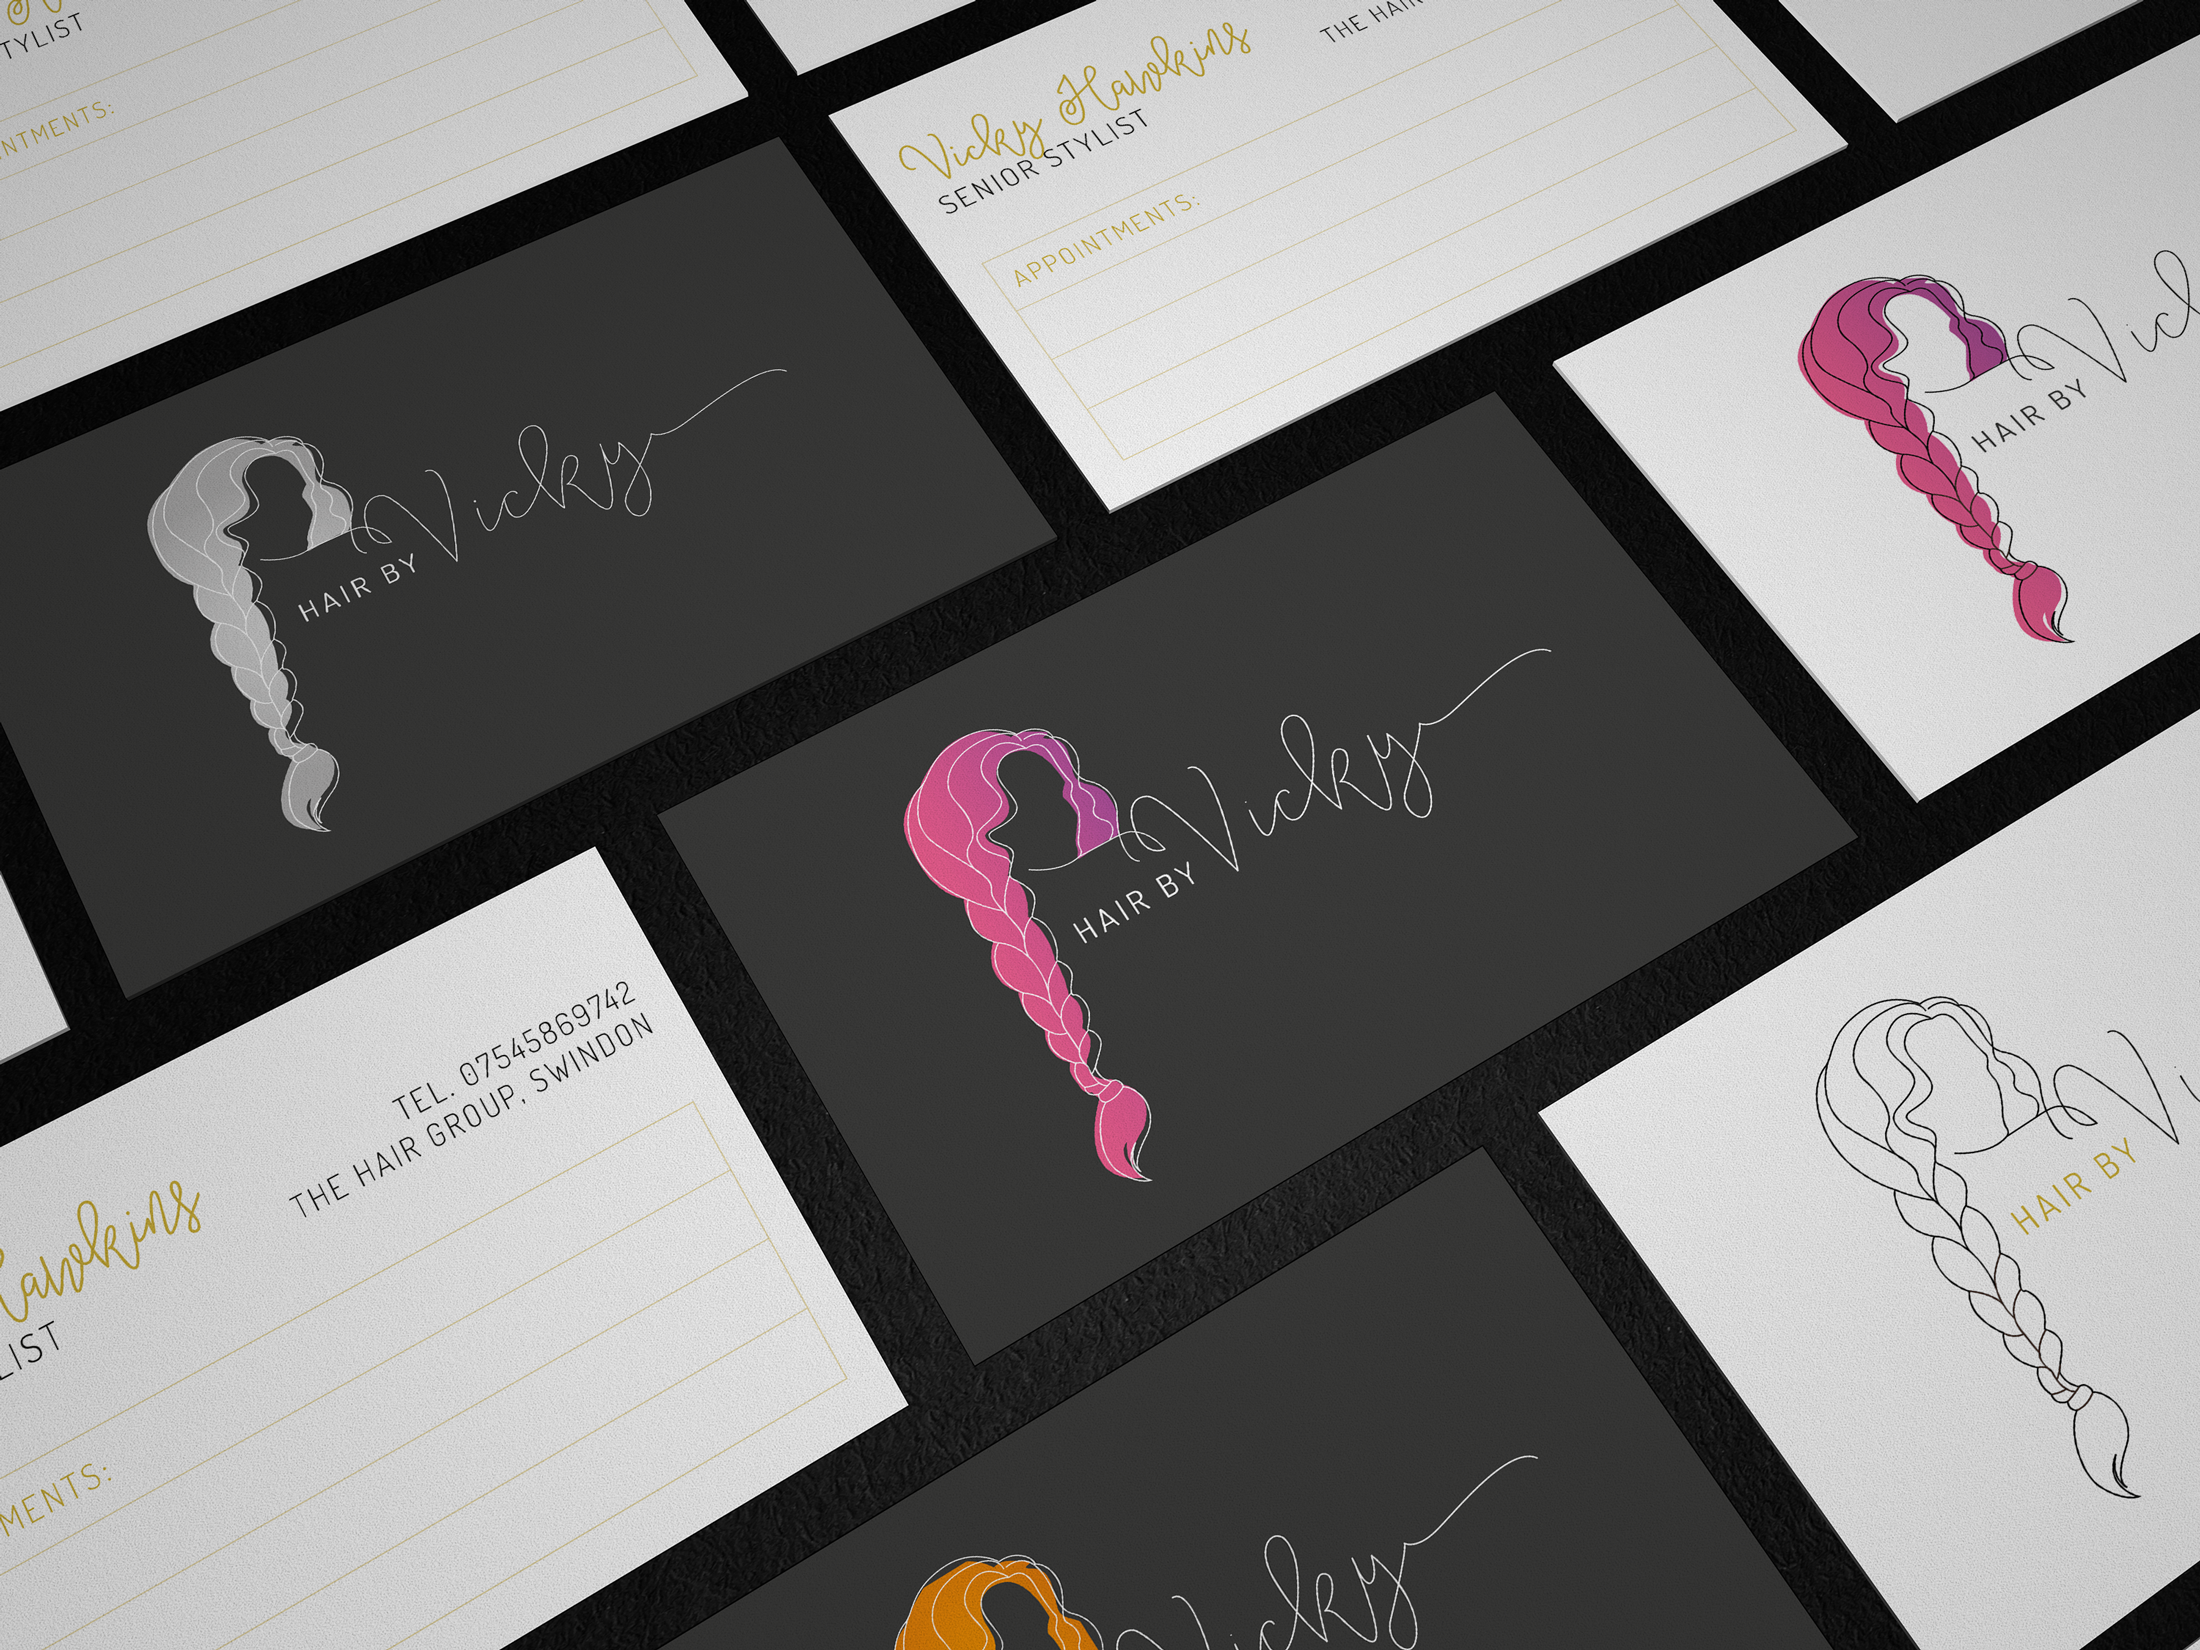 Business cards for self-employed hairdresser, Hair by Vicky - designed by Wiltshire-based graphic designer, Kaye Huett